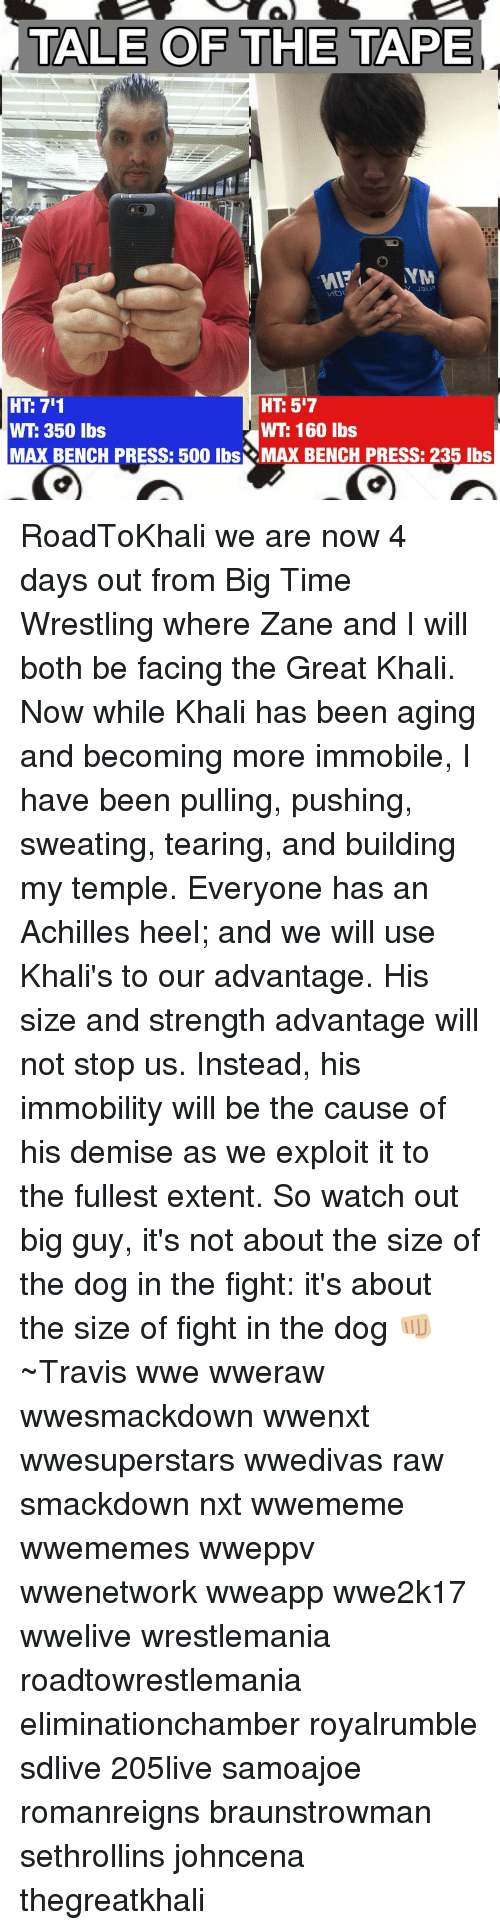 great khali: TALE OF THE TAPE  INM  517  HT 711  HT WT 350 lbs  WTE 160 lbs  MAX BENCH PRESS: 500 lbsS MAX BENCH PRESS: 235 lbs RoadToKhali we are now 4 days out from Big Time Wrestling where Zane and I will both be facing the Great Khali. Now while Khali has been aging and becoming more immobile, I have been pulling, pushing, sweating, tearing, and building my temple. Everyone has an Achilles heel; and we will use Khali's to our advantage. His size and strength advantage will not stop us. Instead, his immobility will be the cause of his demise as we exploit it to the fullest extent. So watch out big guy, it's not about the size of the dog in the fight: it's about the size of fight in the dog 👊🏼 ~Travis wwe wweraw wwesmackdown wwenxt wwesuperstars wwedivas raw smackdown nxt wwememe wwememes wweppv wwenetwork wweapp wwe2k17 wwelive wrestlemania roadtowrestlemania eliminationchamber royalrumble sdlive 205live samoajoe romanreigns braunstrowman sethrollins johncena thegreatkhali